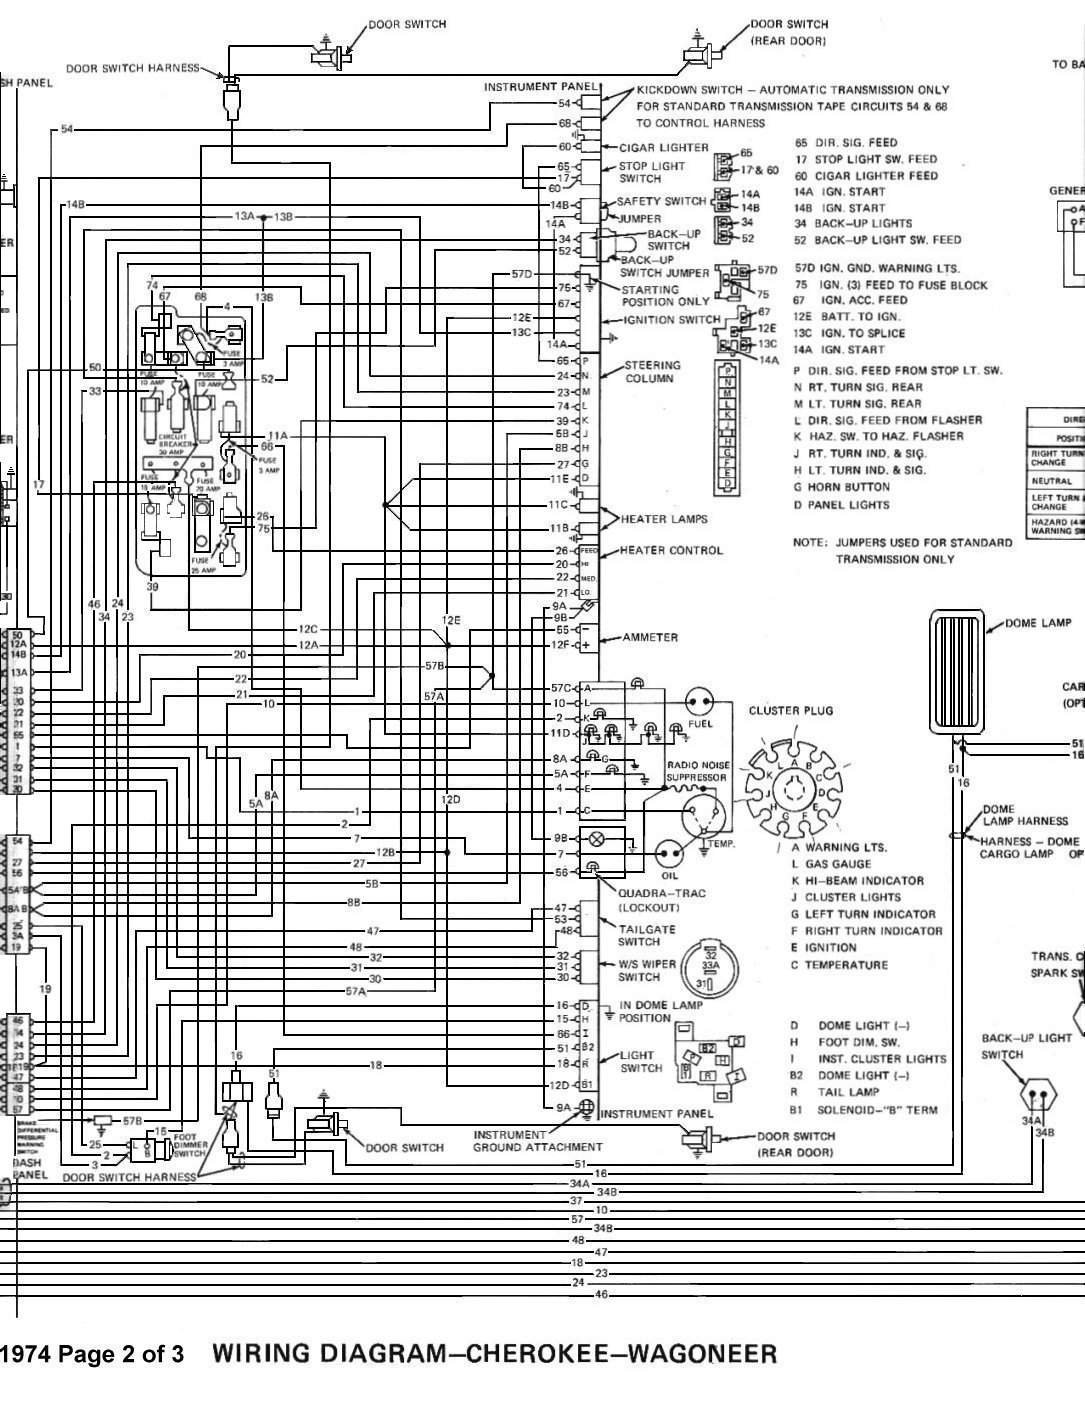 Tom 'Oljeep' Collins FSJ Wiring Page on series and parallel circuits diagrams, engine diagrams, switch diagrams, gmc fuse box diagrams, lighting diagrams, hvac diagrams, troubleshooting diagrams, motor diagrams, honda motorcycle repair diagrams, pinout diagrams, smart car diagrams, transformer diagrams, internet of things diagrams, battery diagrams, friendship bracelet diagrams, led circuit diagrams, electronic circuit diagrams, snatch block diagrams, electrical diagrams, sincgars radio configurations diagrams,